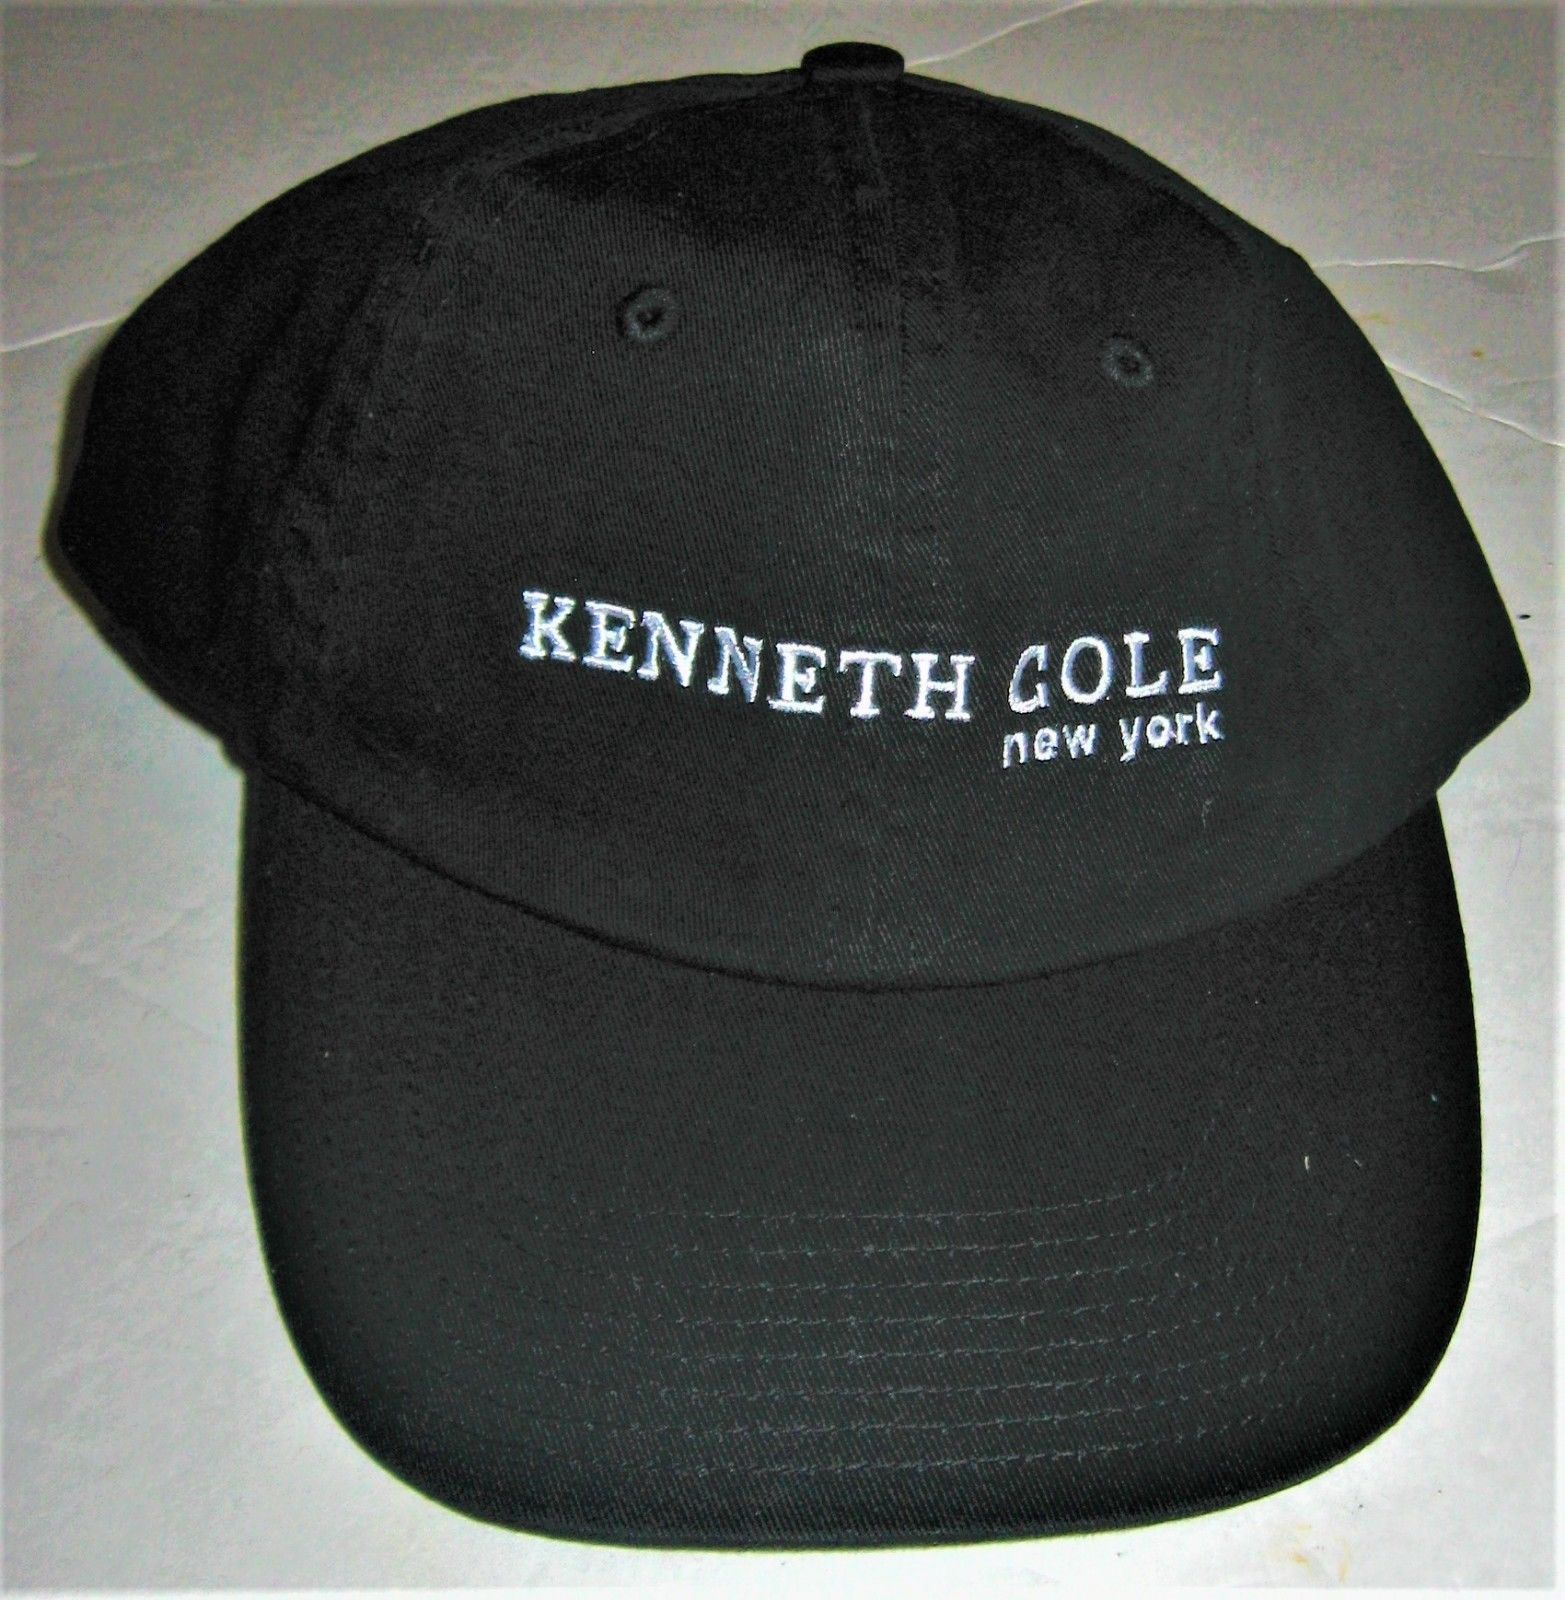 Kenneth Cole Baseball Cap Black with White Graphics